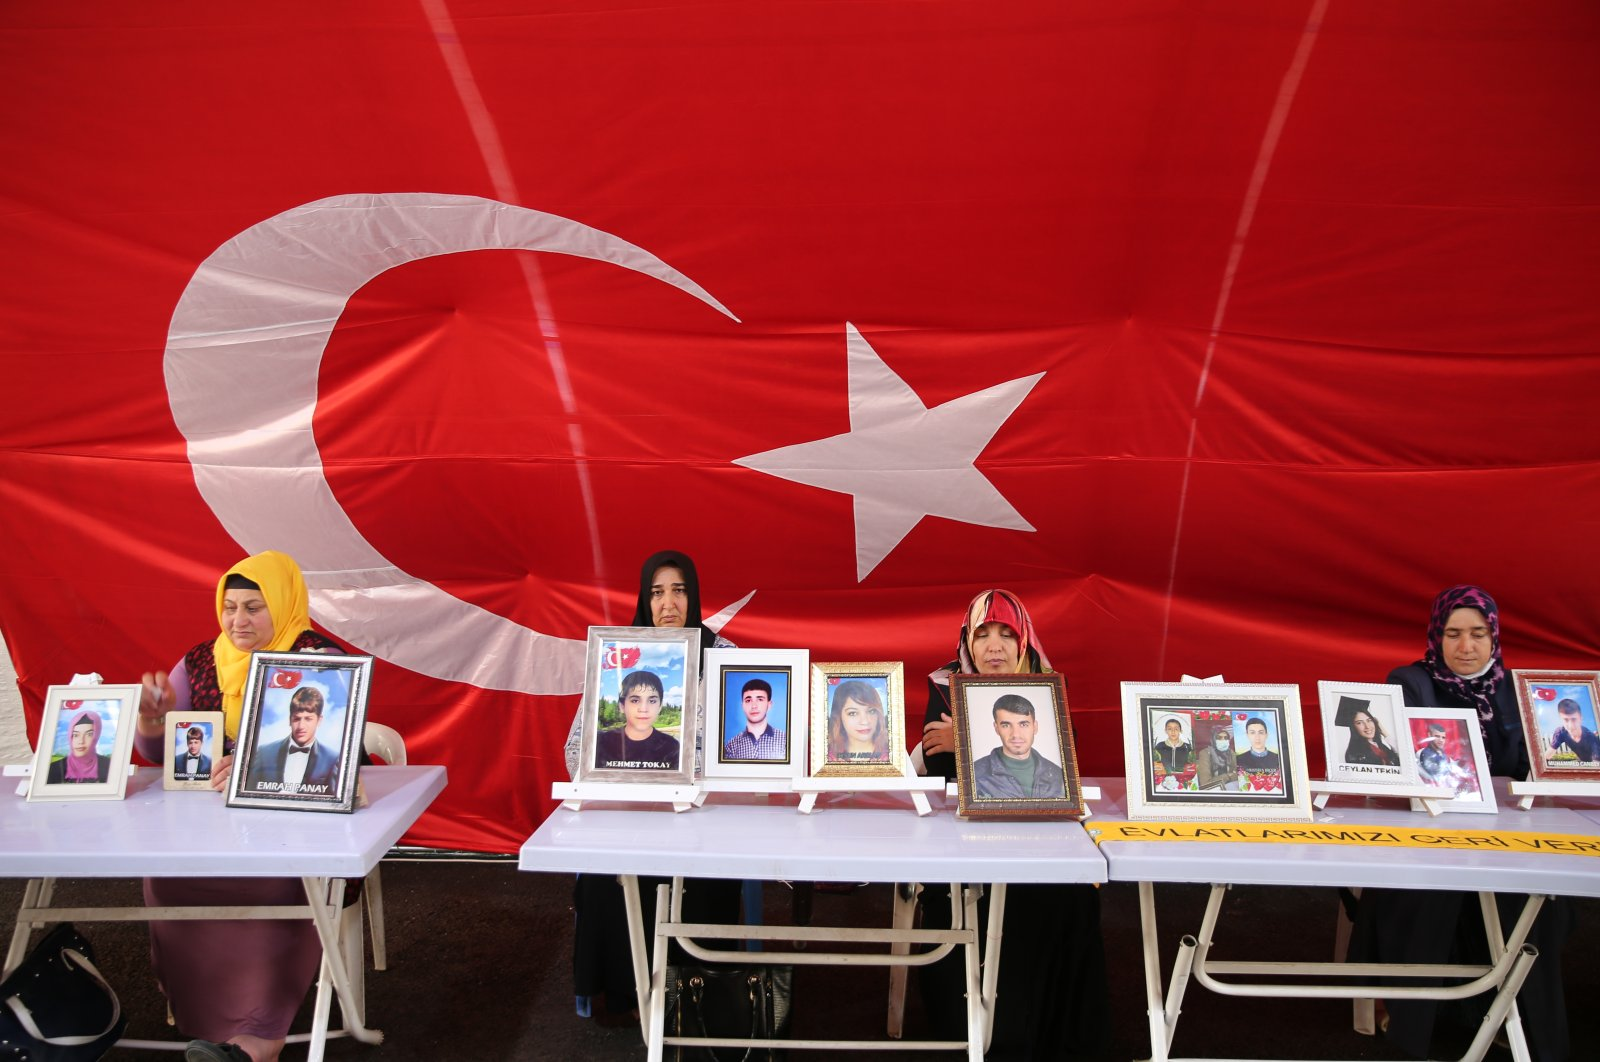 Families whose children were abducted by the PKK stage a sit-in protest against the terror group in southeastern Diyarbakır province, Turkey, July 23, 2021. (AA Photo)